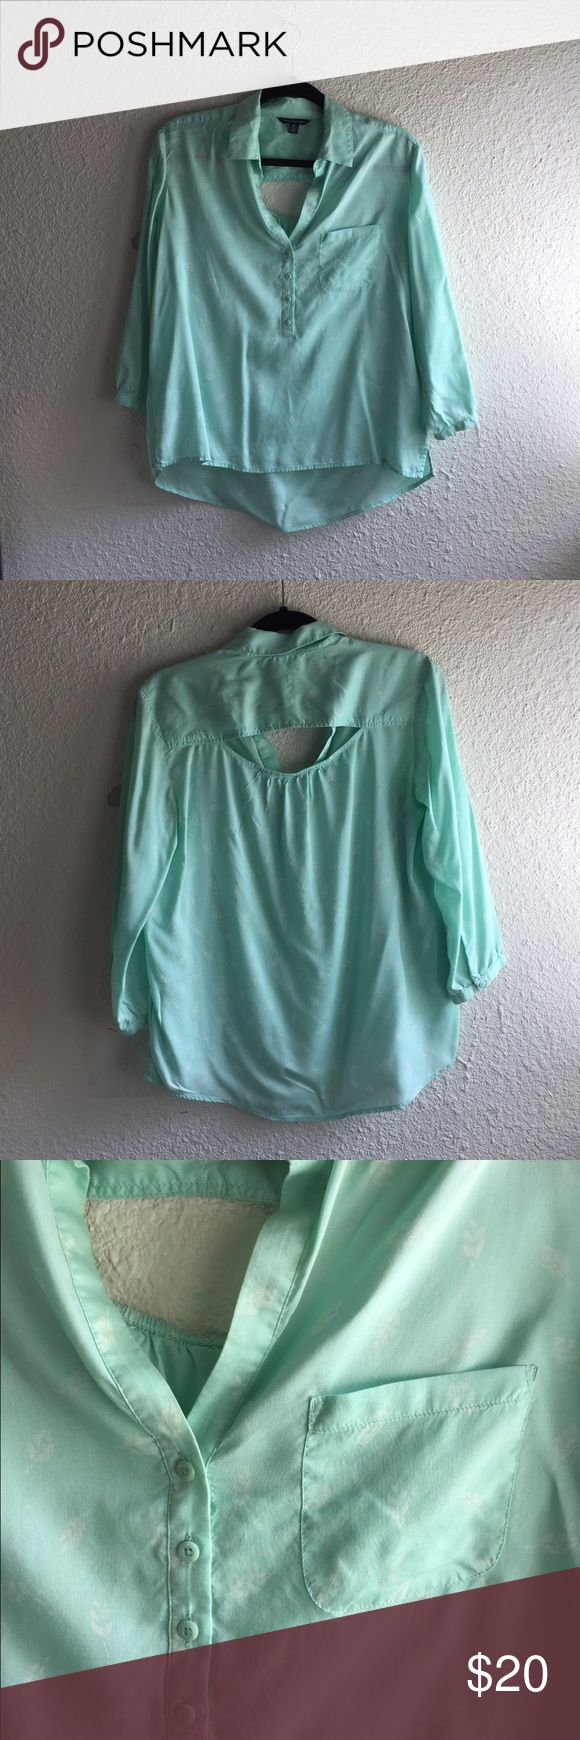 American Eagle shirt Mint green shirt with leaf print. 3/4 sleeve and hi low hem. American Eagle Outfitters Tops Button Down Shirts